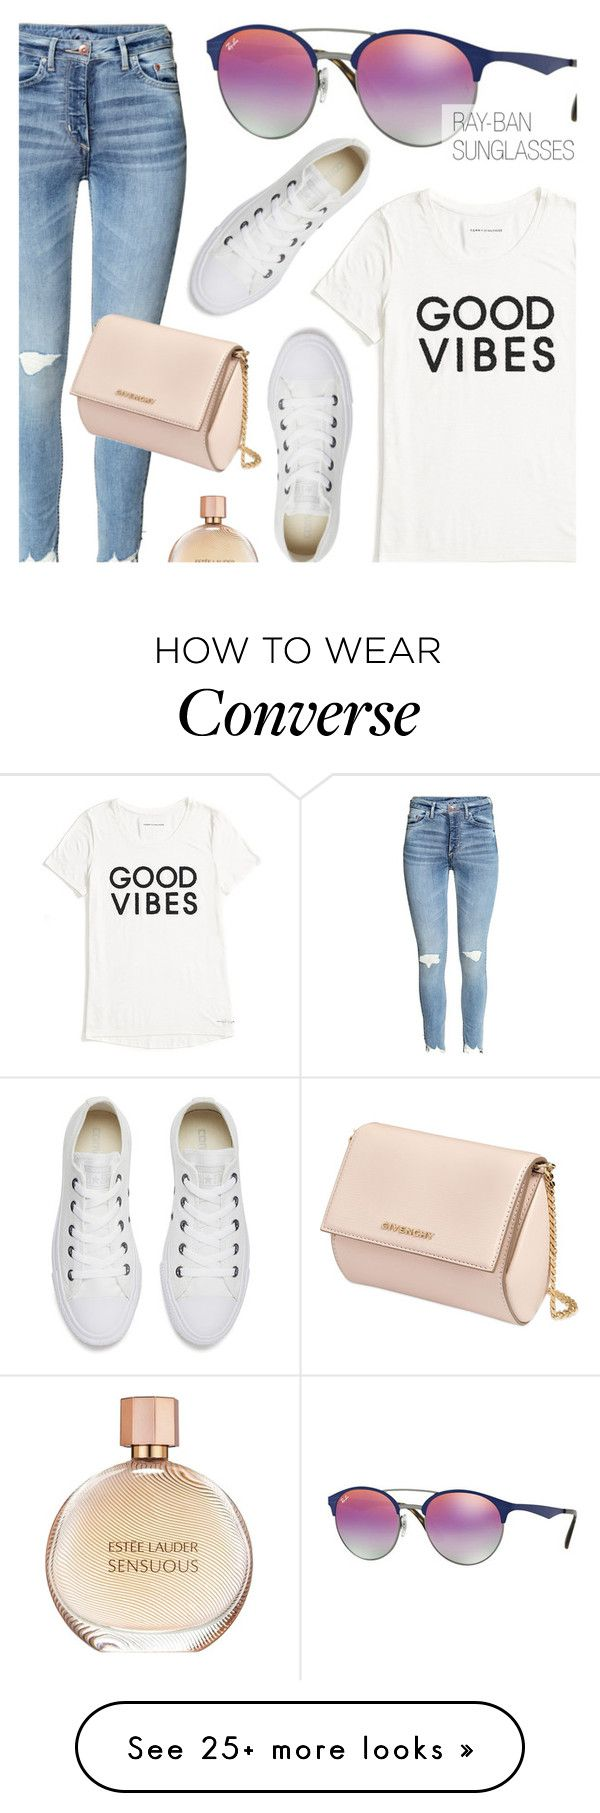 """""""Good Vibes"""" by smartbuyglasses on Polyvore featuring Ray-Ban, Tommy Hilfiger, Converse, Givenchy, Estée Lauder, sunglasses and rayban"""